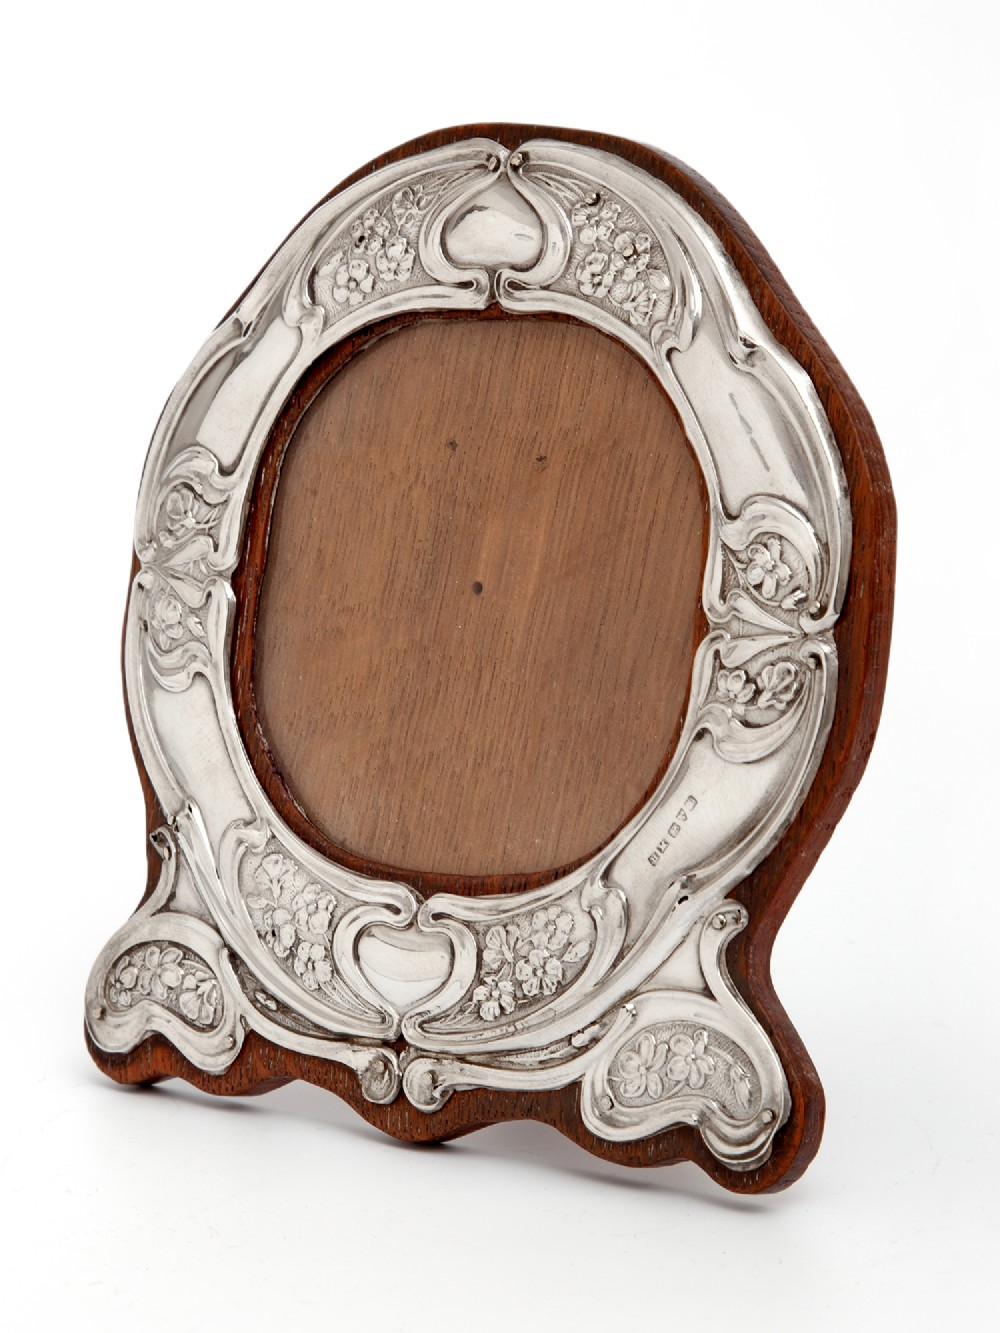 art nouveau silver photo picture frame with repousse stylised floral decoration